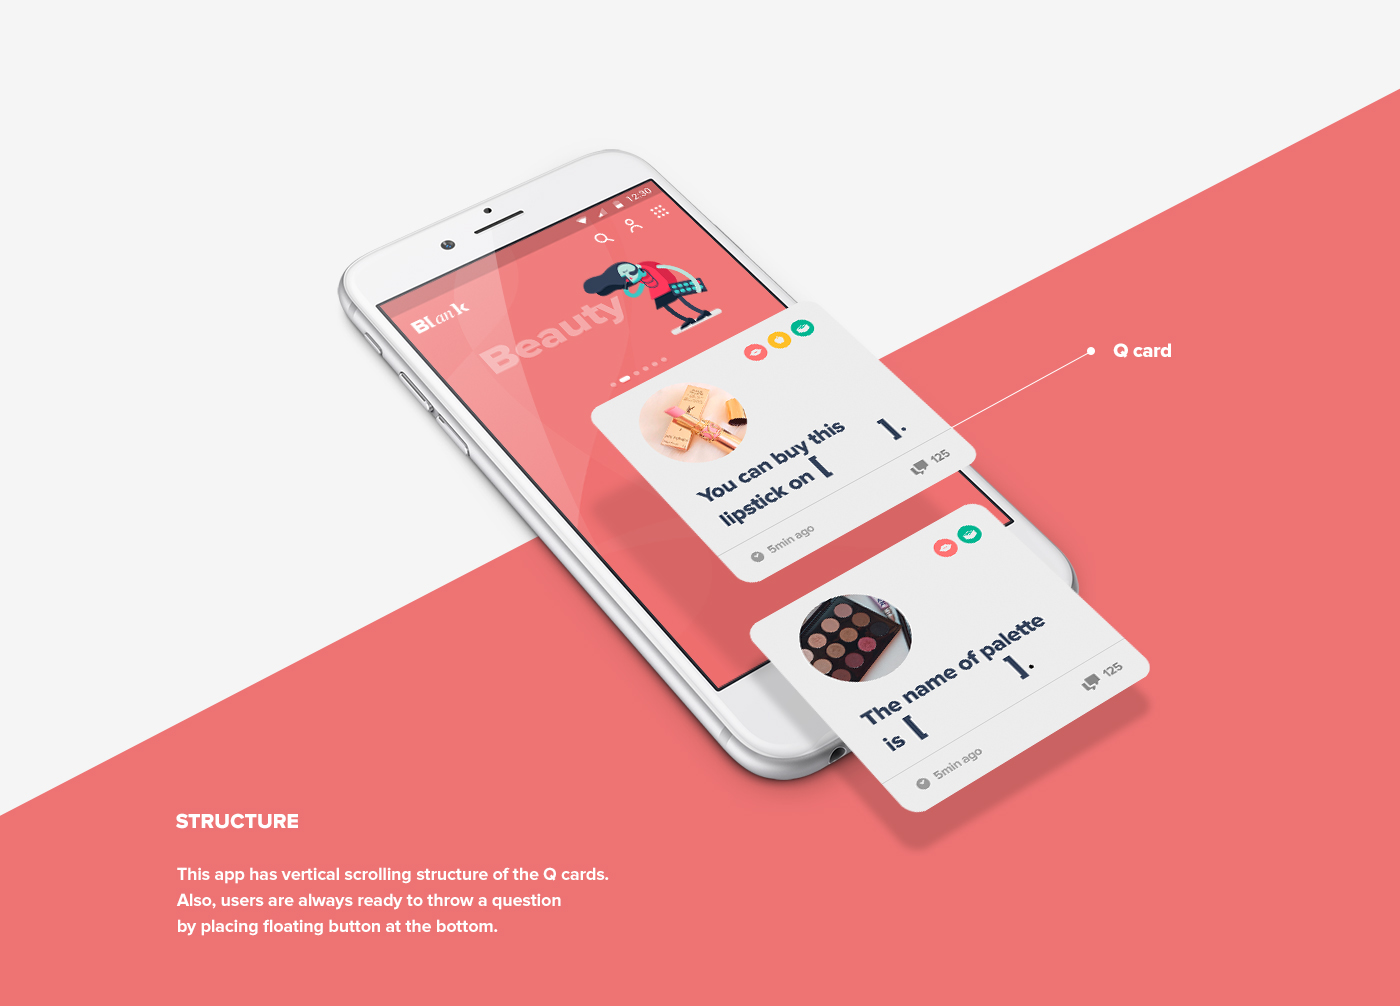 Interaction Design and Branding: Blank